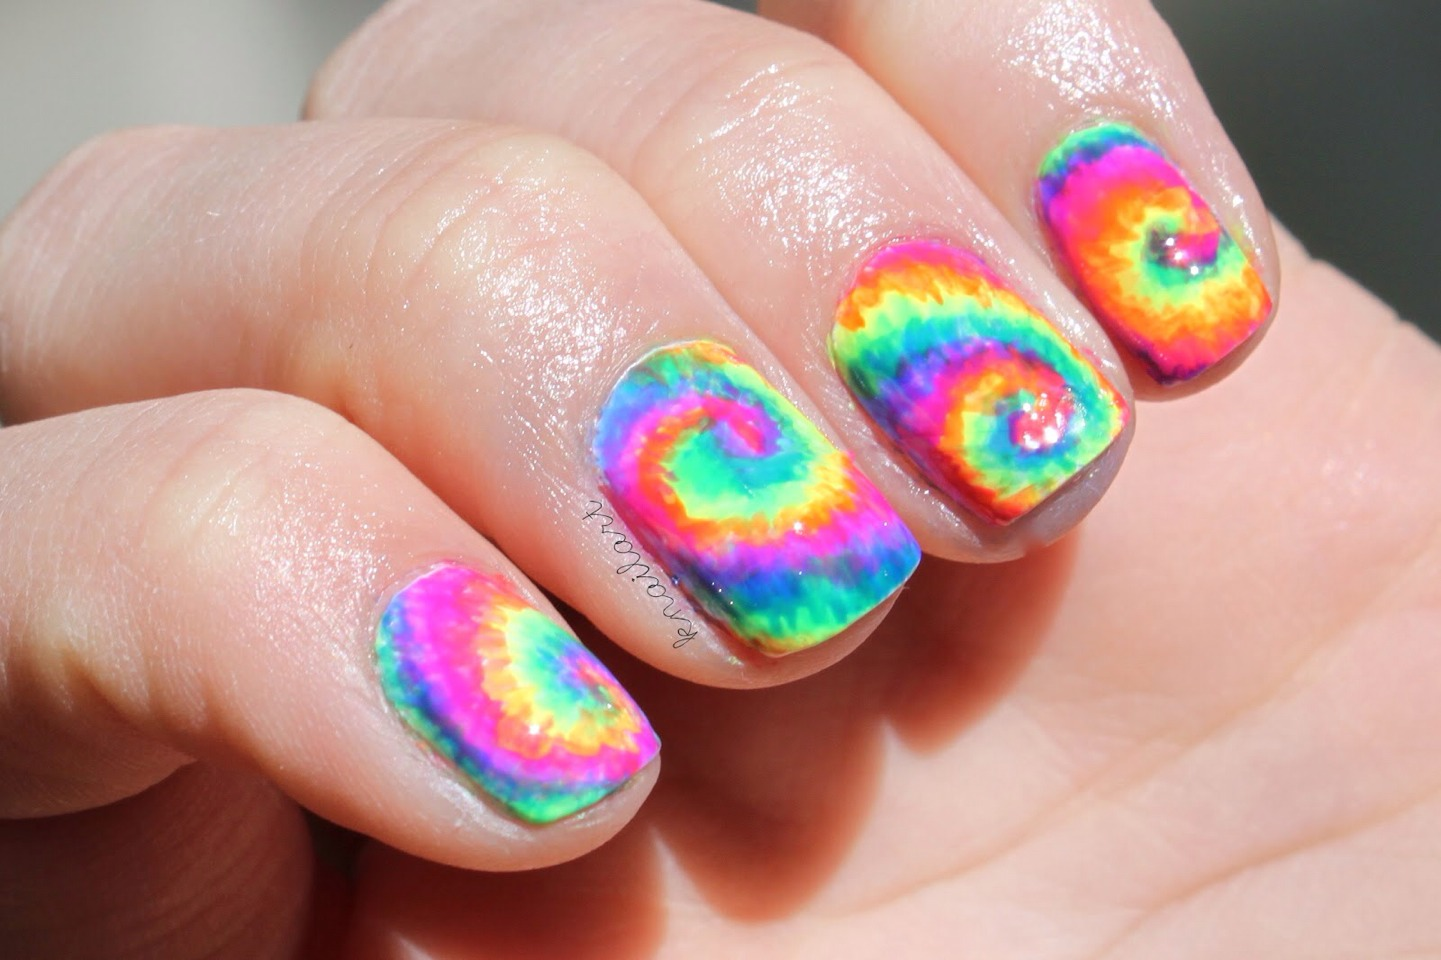 This is just stunning for summer and has a great festival vibe to it! Tie die is always a perfect look!